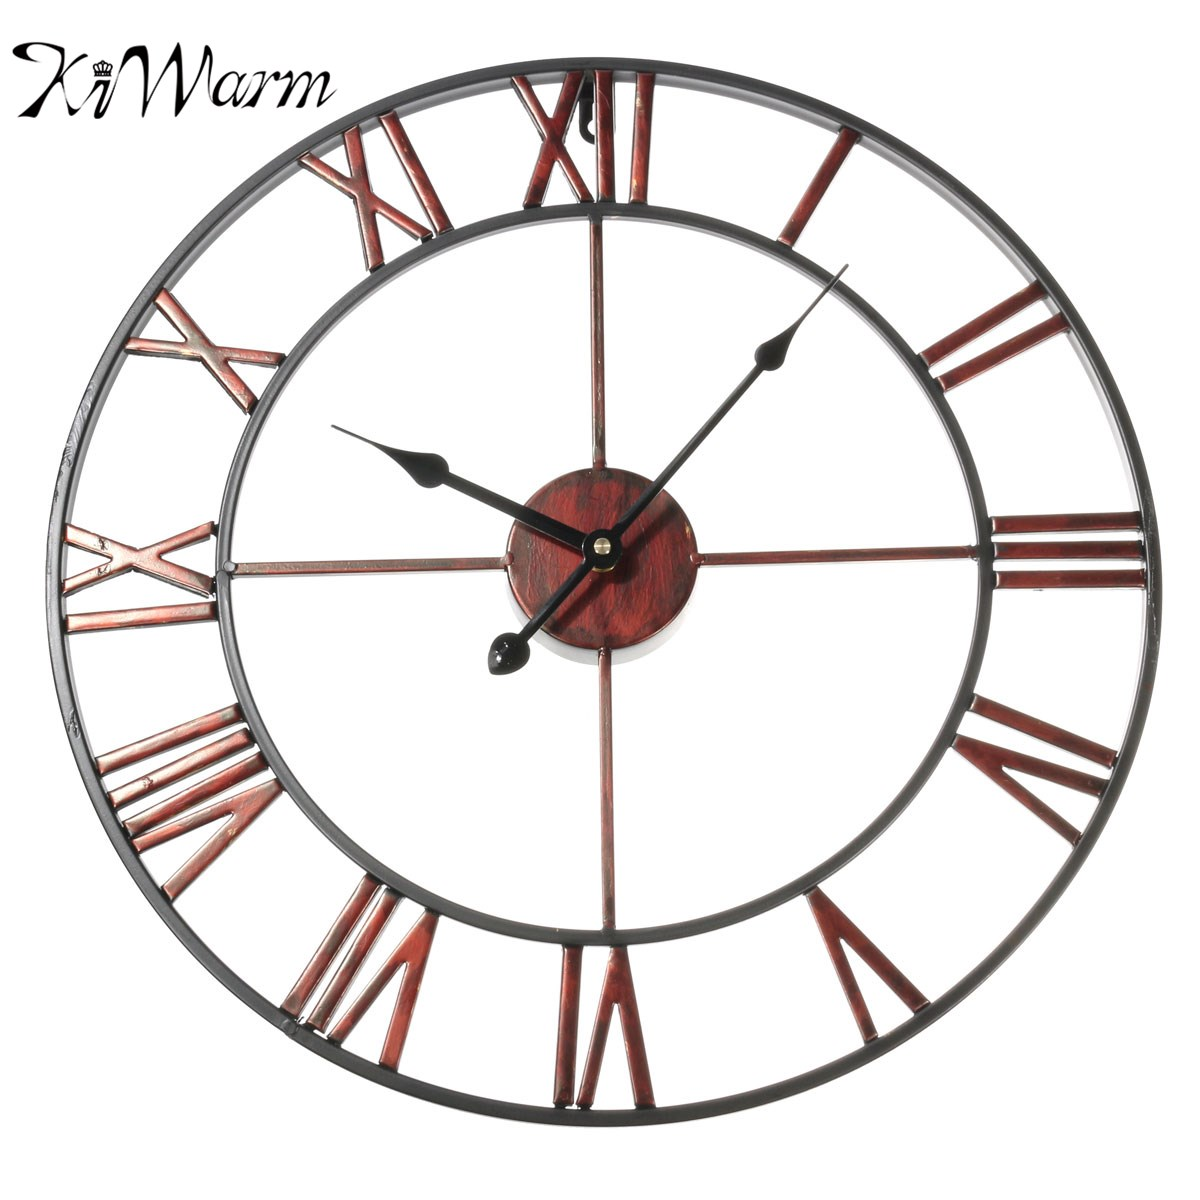 KiWarm Retro Classic Large Metal Wrought Iron Wall Clock Provincial Roman Numerals Art Gear Decoration for Home Craft